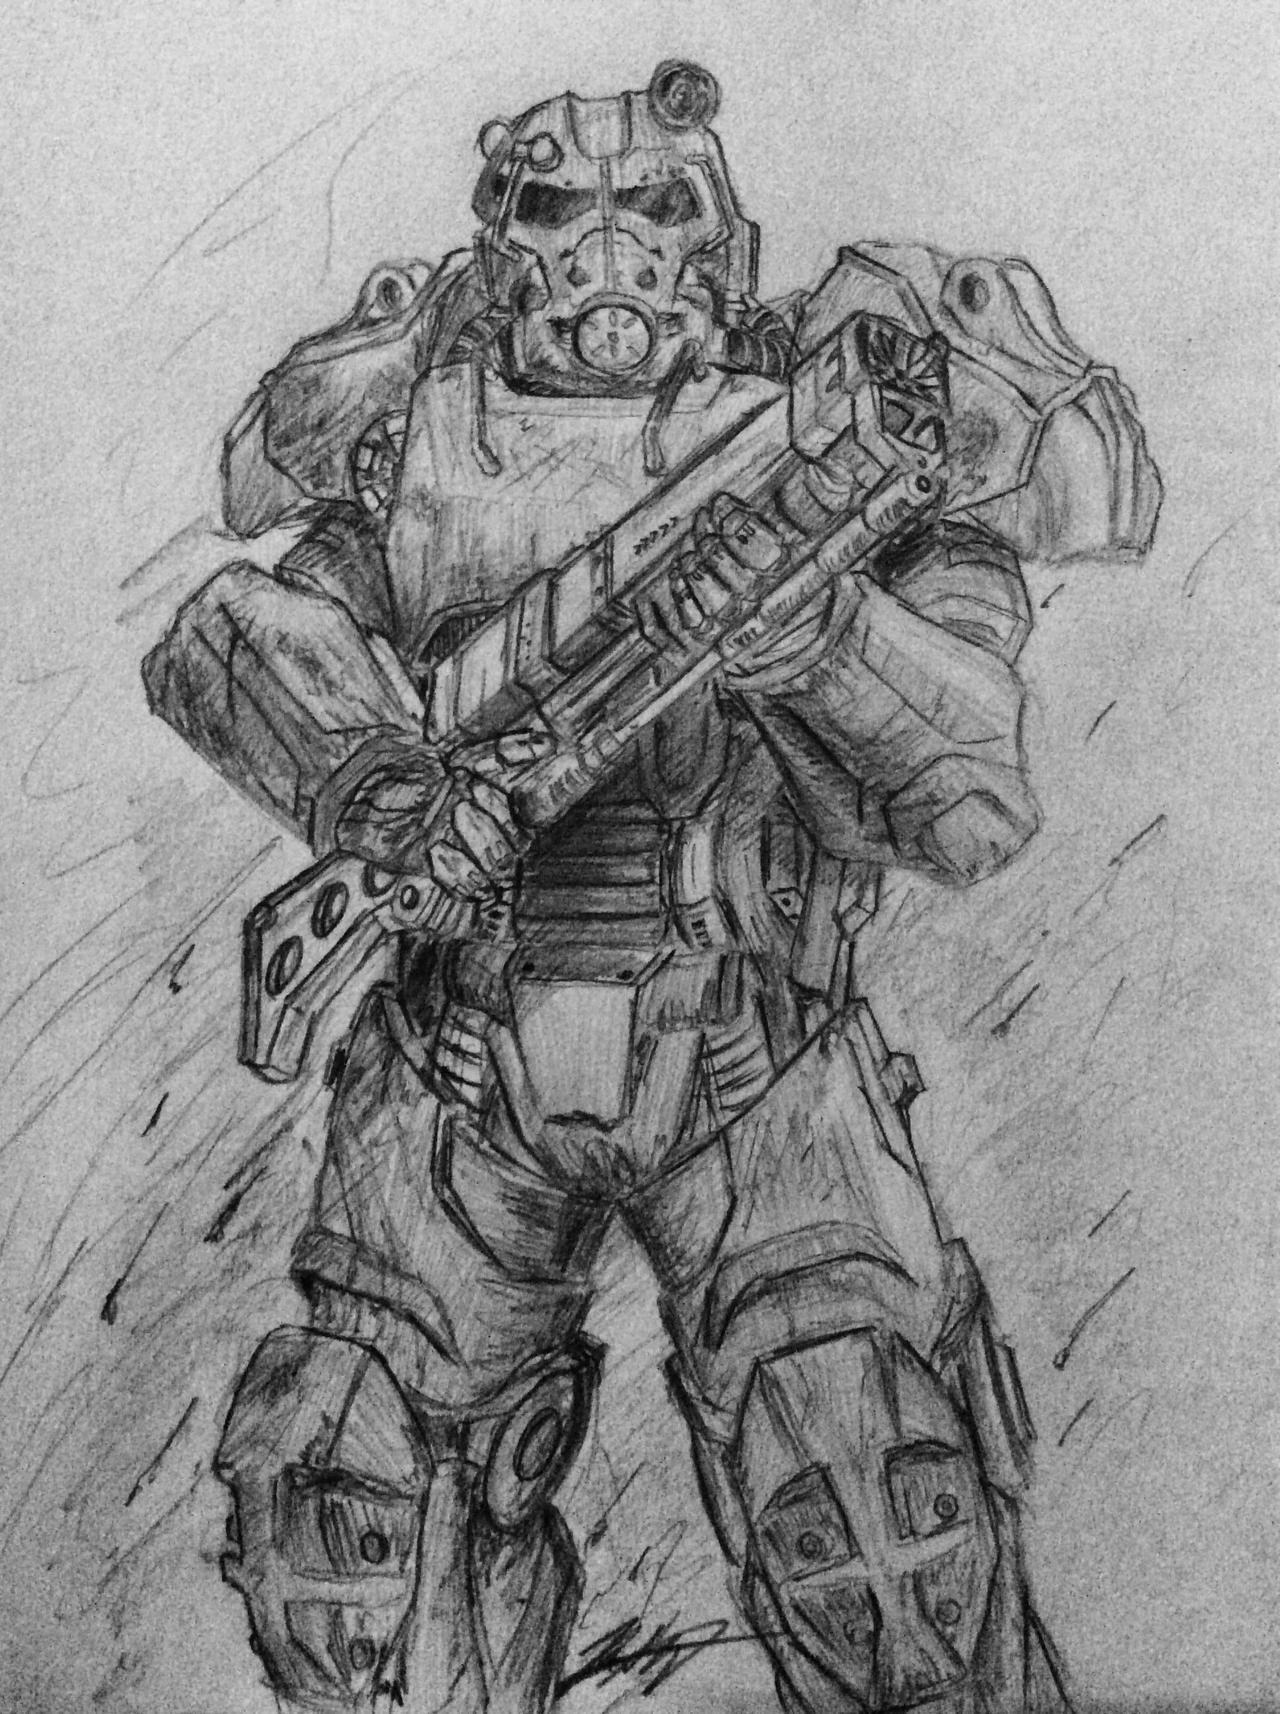 T-60b Power Armor - Fallout 4 by Silent-Valiance on DeviantArt